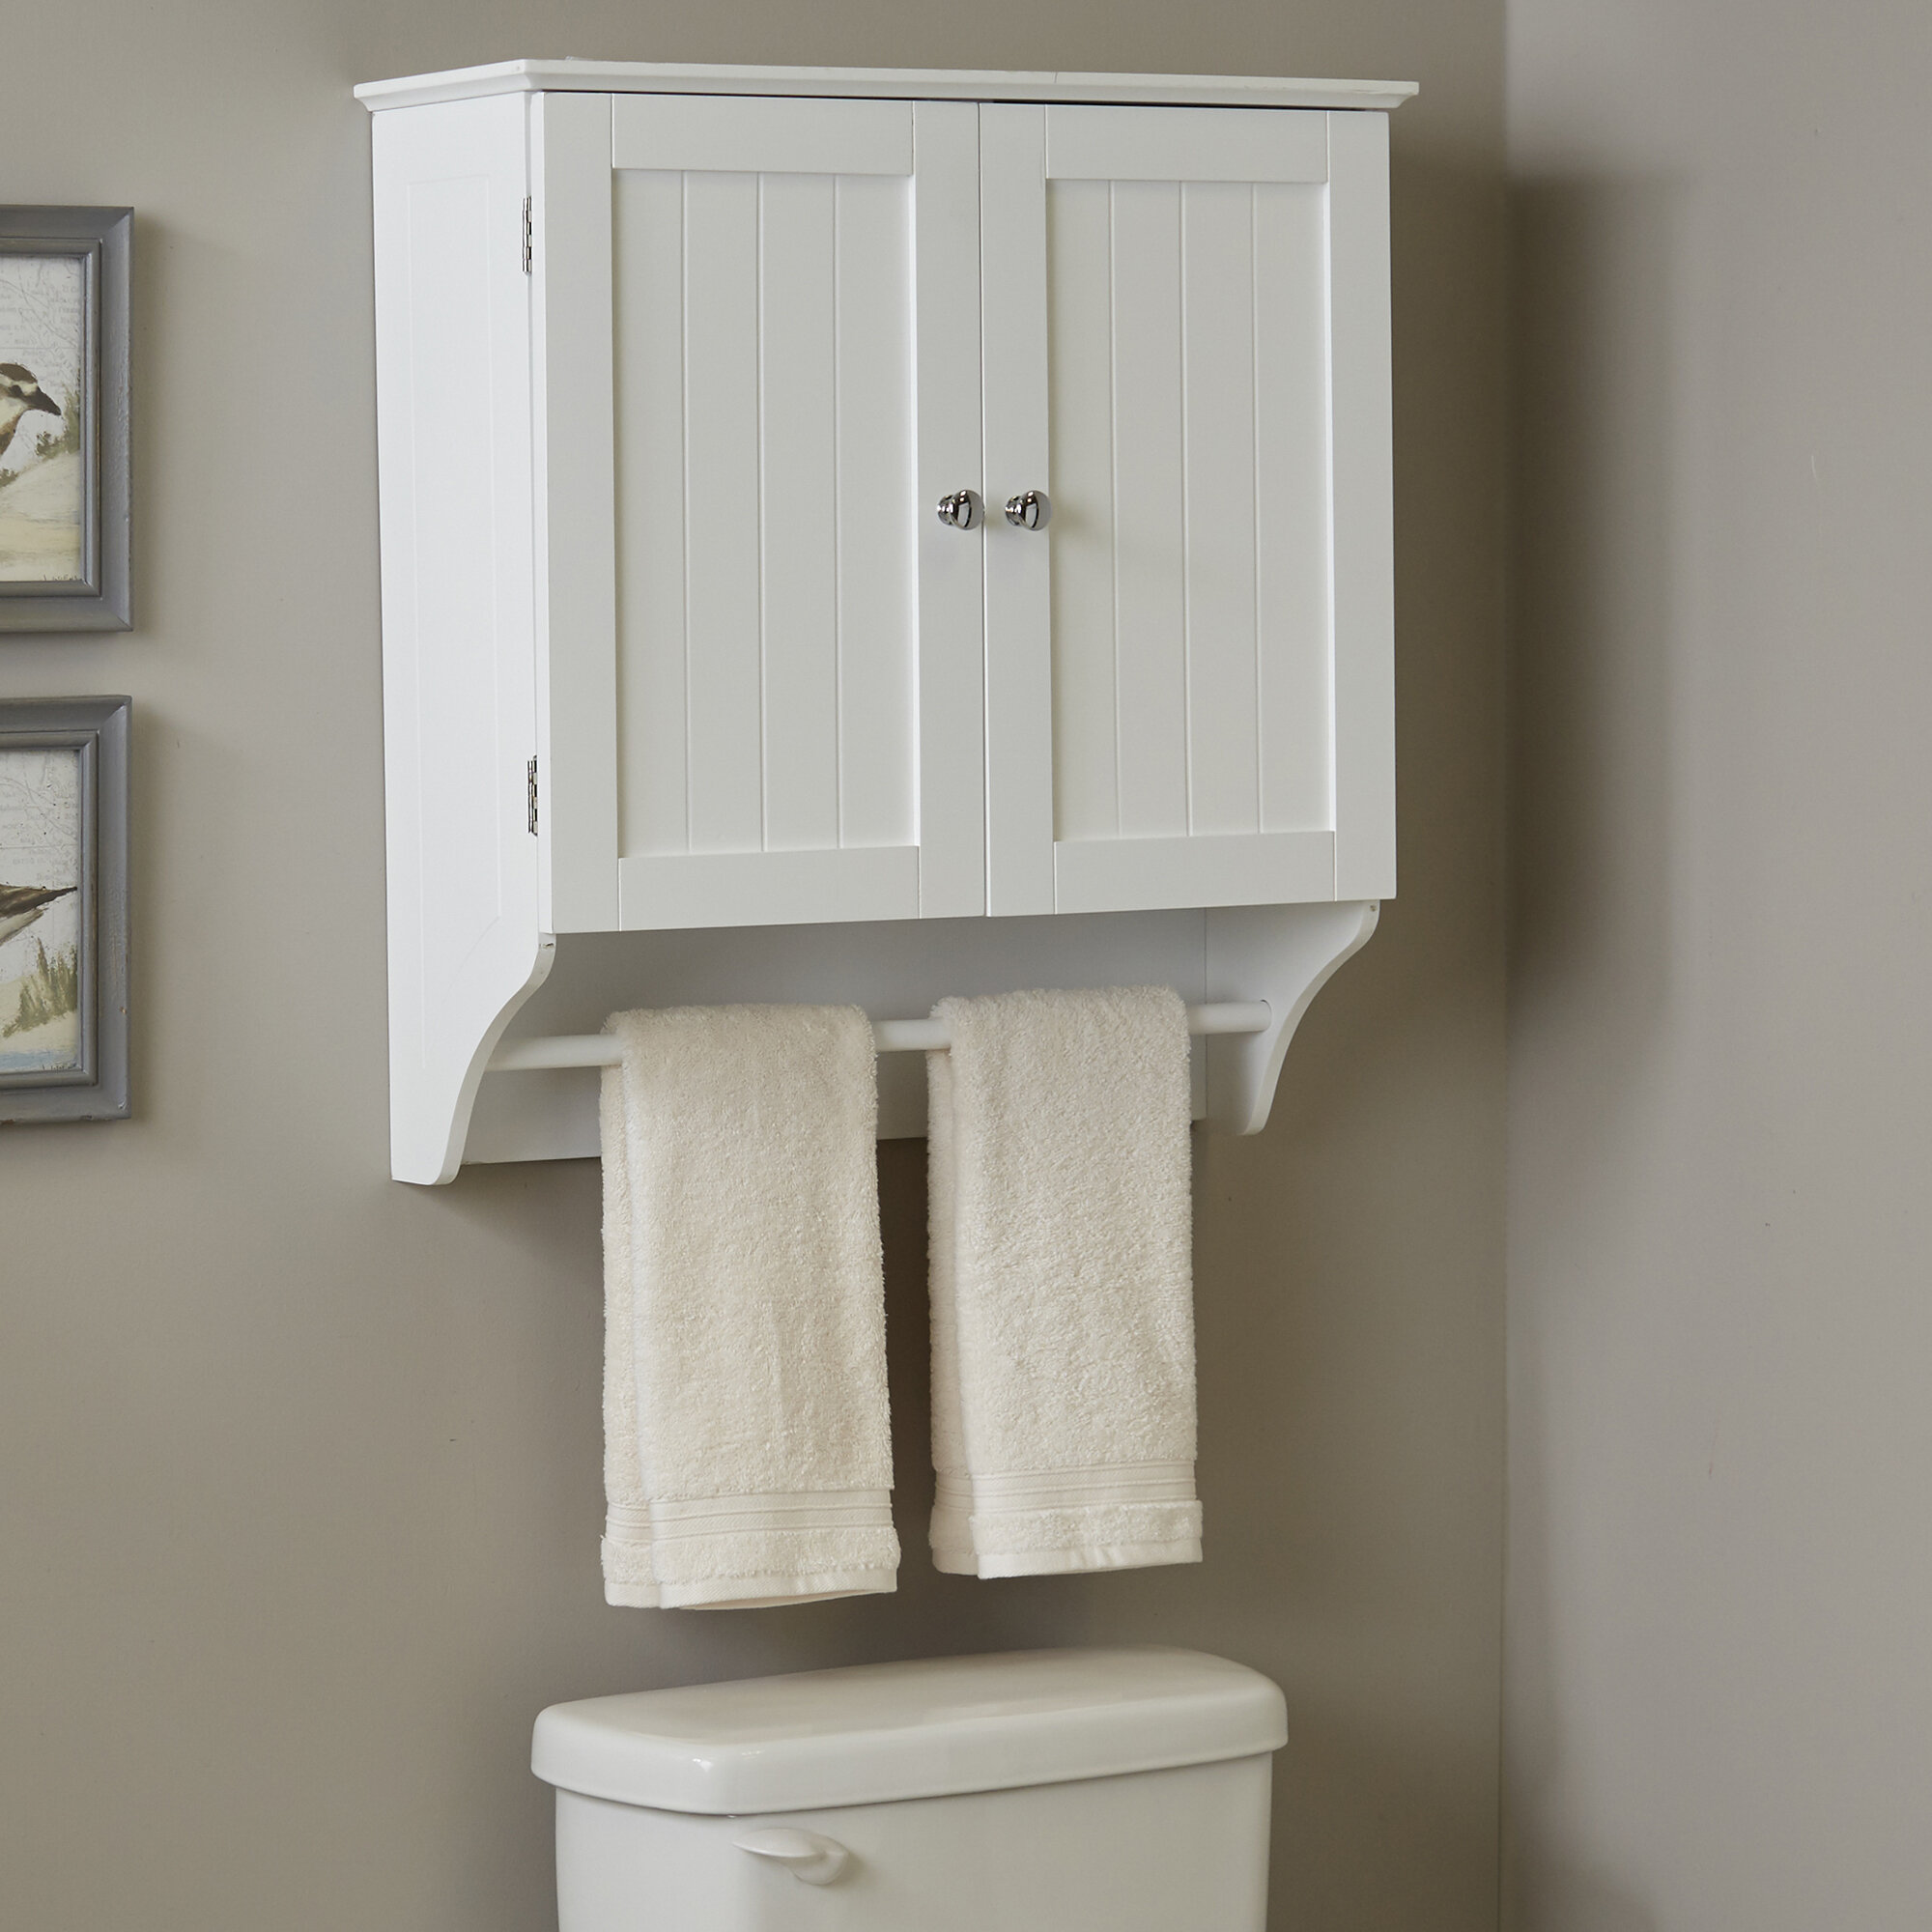 Wall Mounted Bathroom Cabinets You\'ll Love | Wayfair